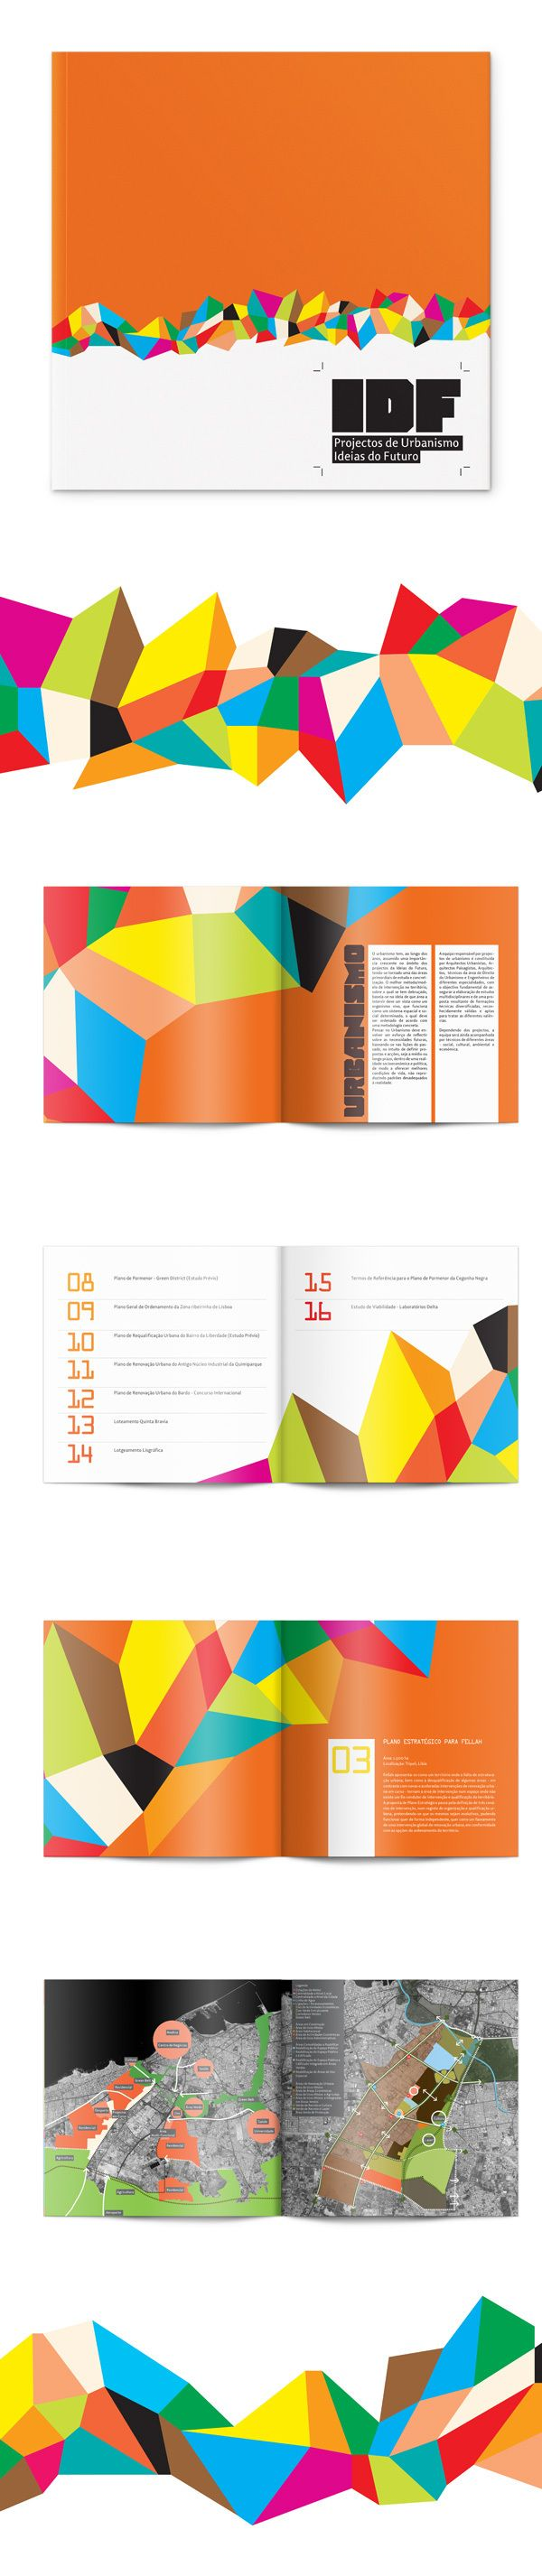 Go Commercial by Catarina Antunes, via Behance